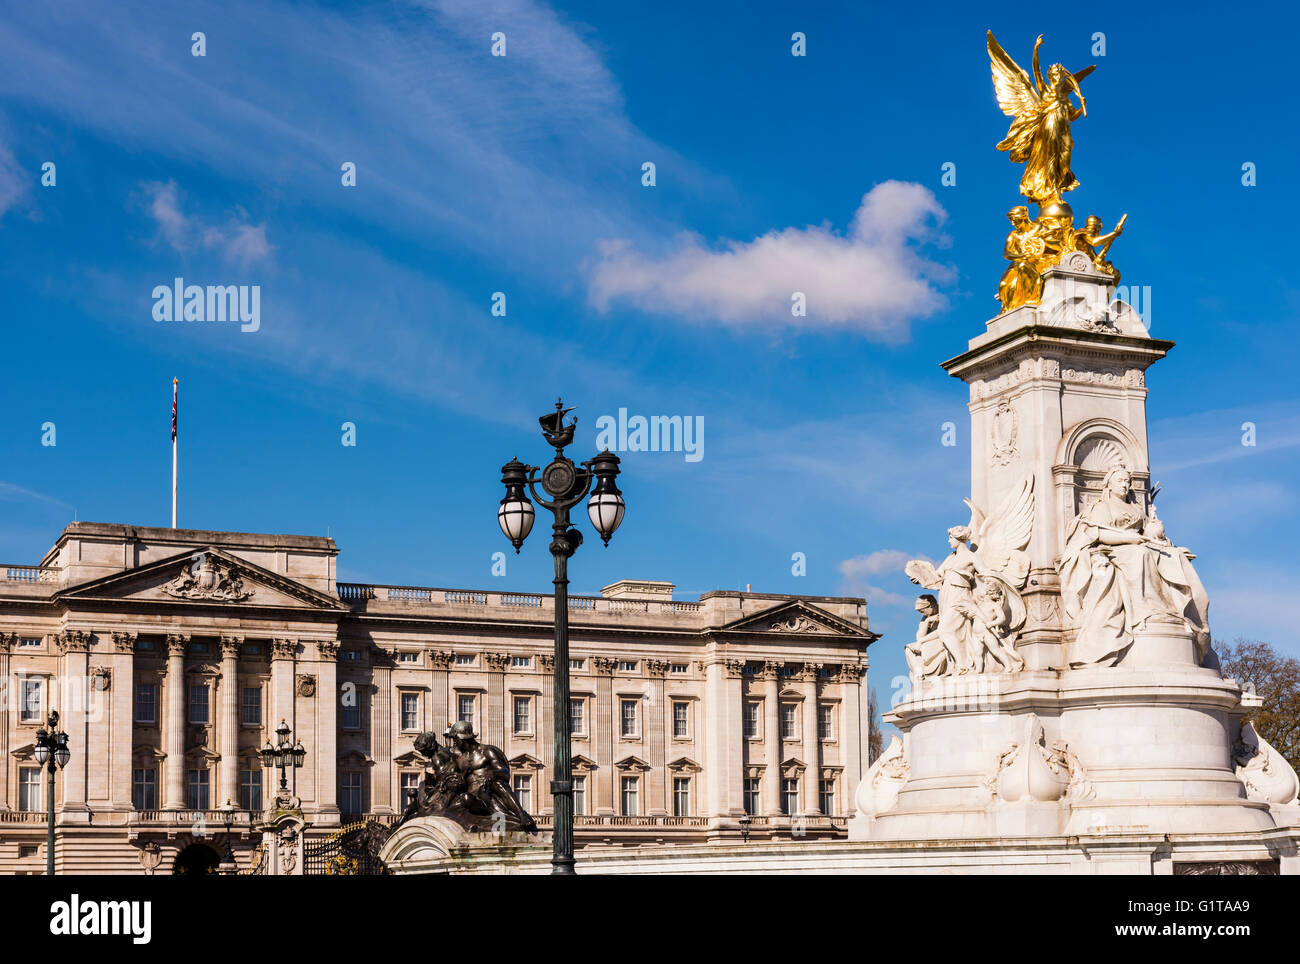 Buckingham Palace and the Victoria Memorial in the early morning sun, Westminster, London, UK. - Stock Image